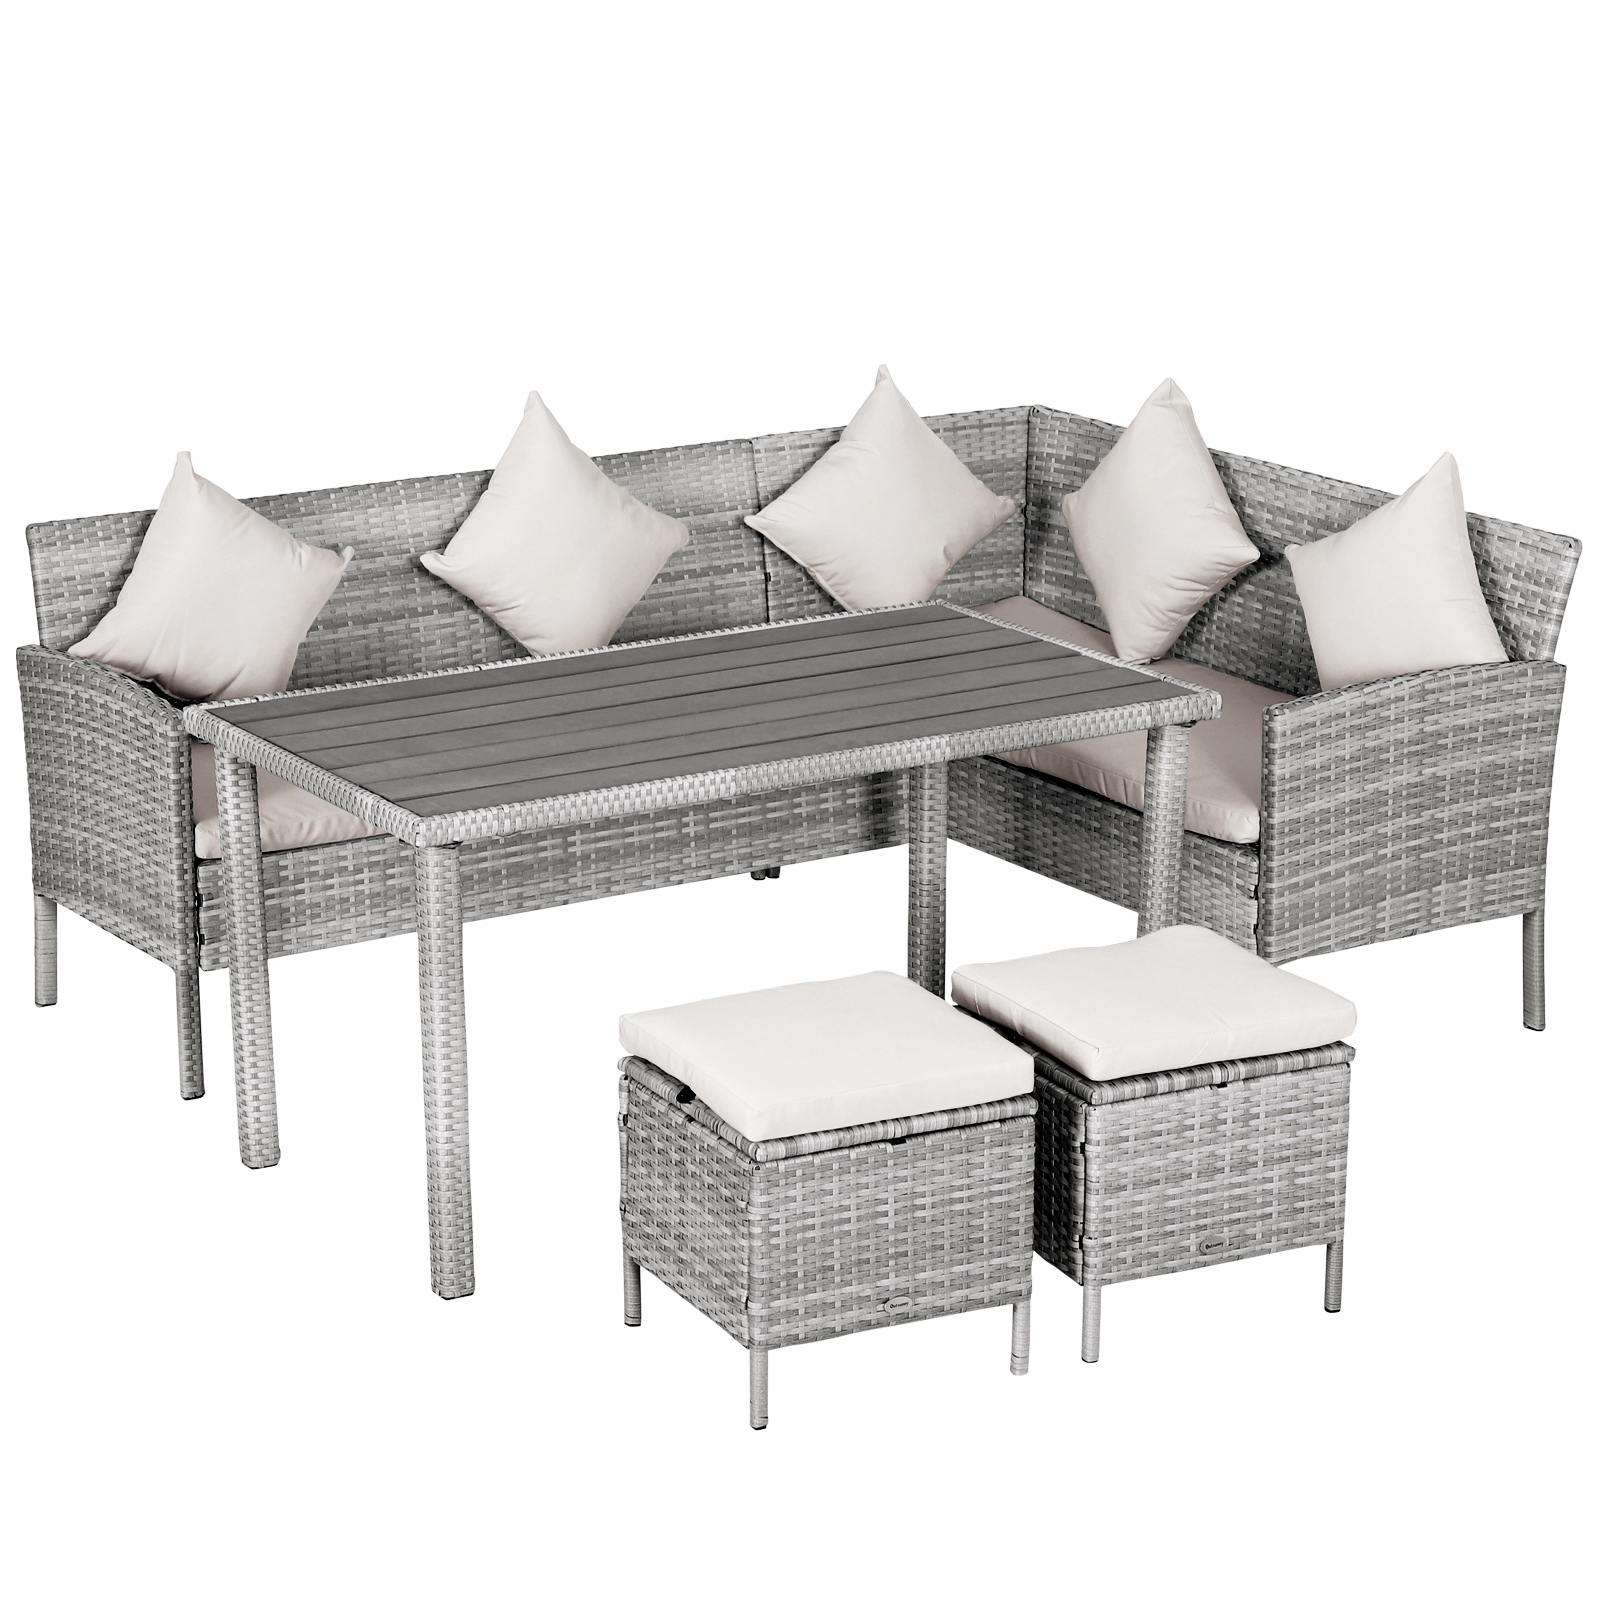 outsunny 5 piece modern outdoor wicker patio furniture sets with pe rattan resistant to weather quality build